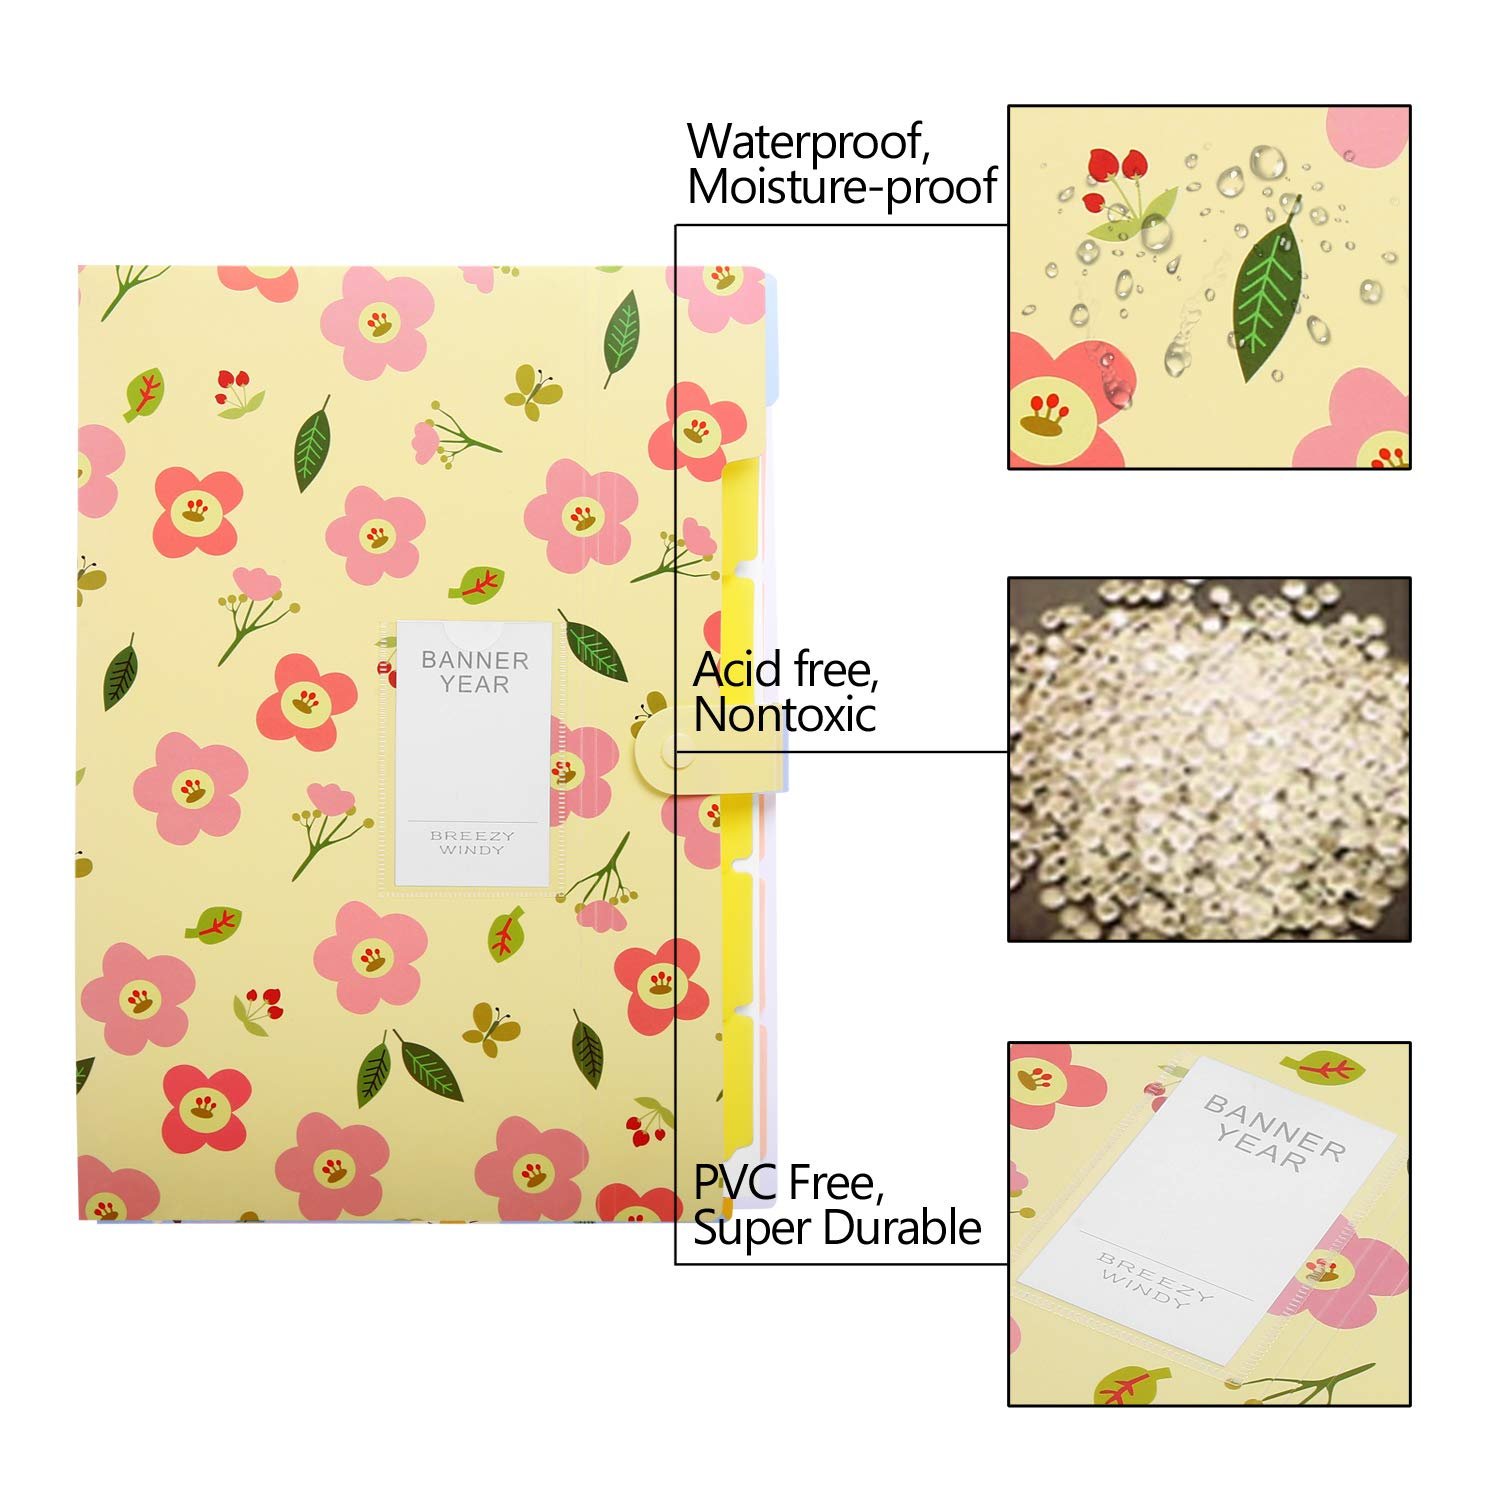 Skydue Floral Printed Expanding File Folder with 8 Pockets Accordion Document File Organizer A4 Letter Size File Jackets Pink